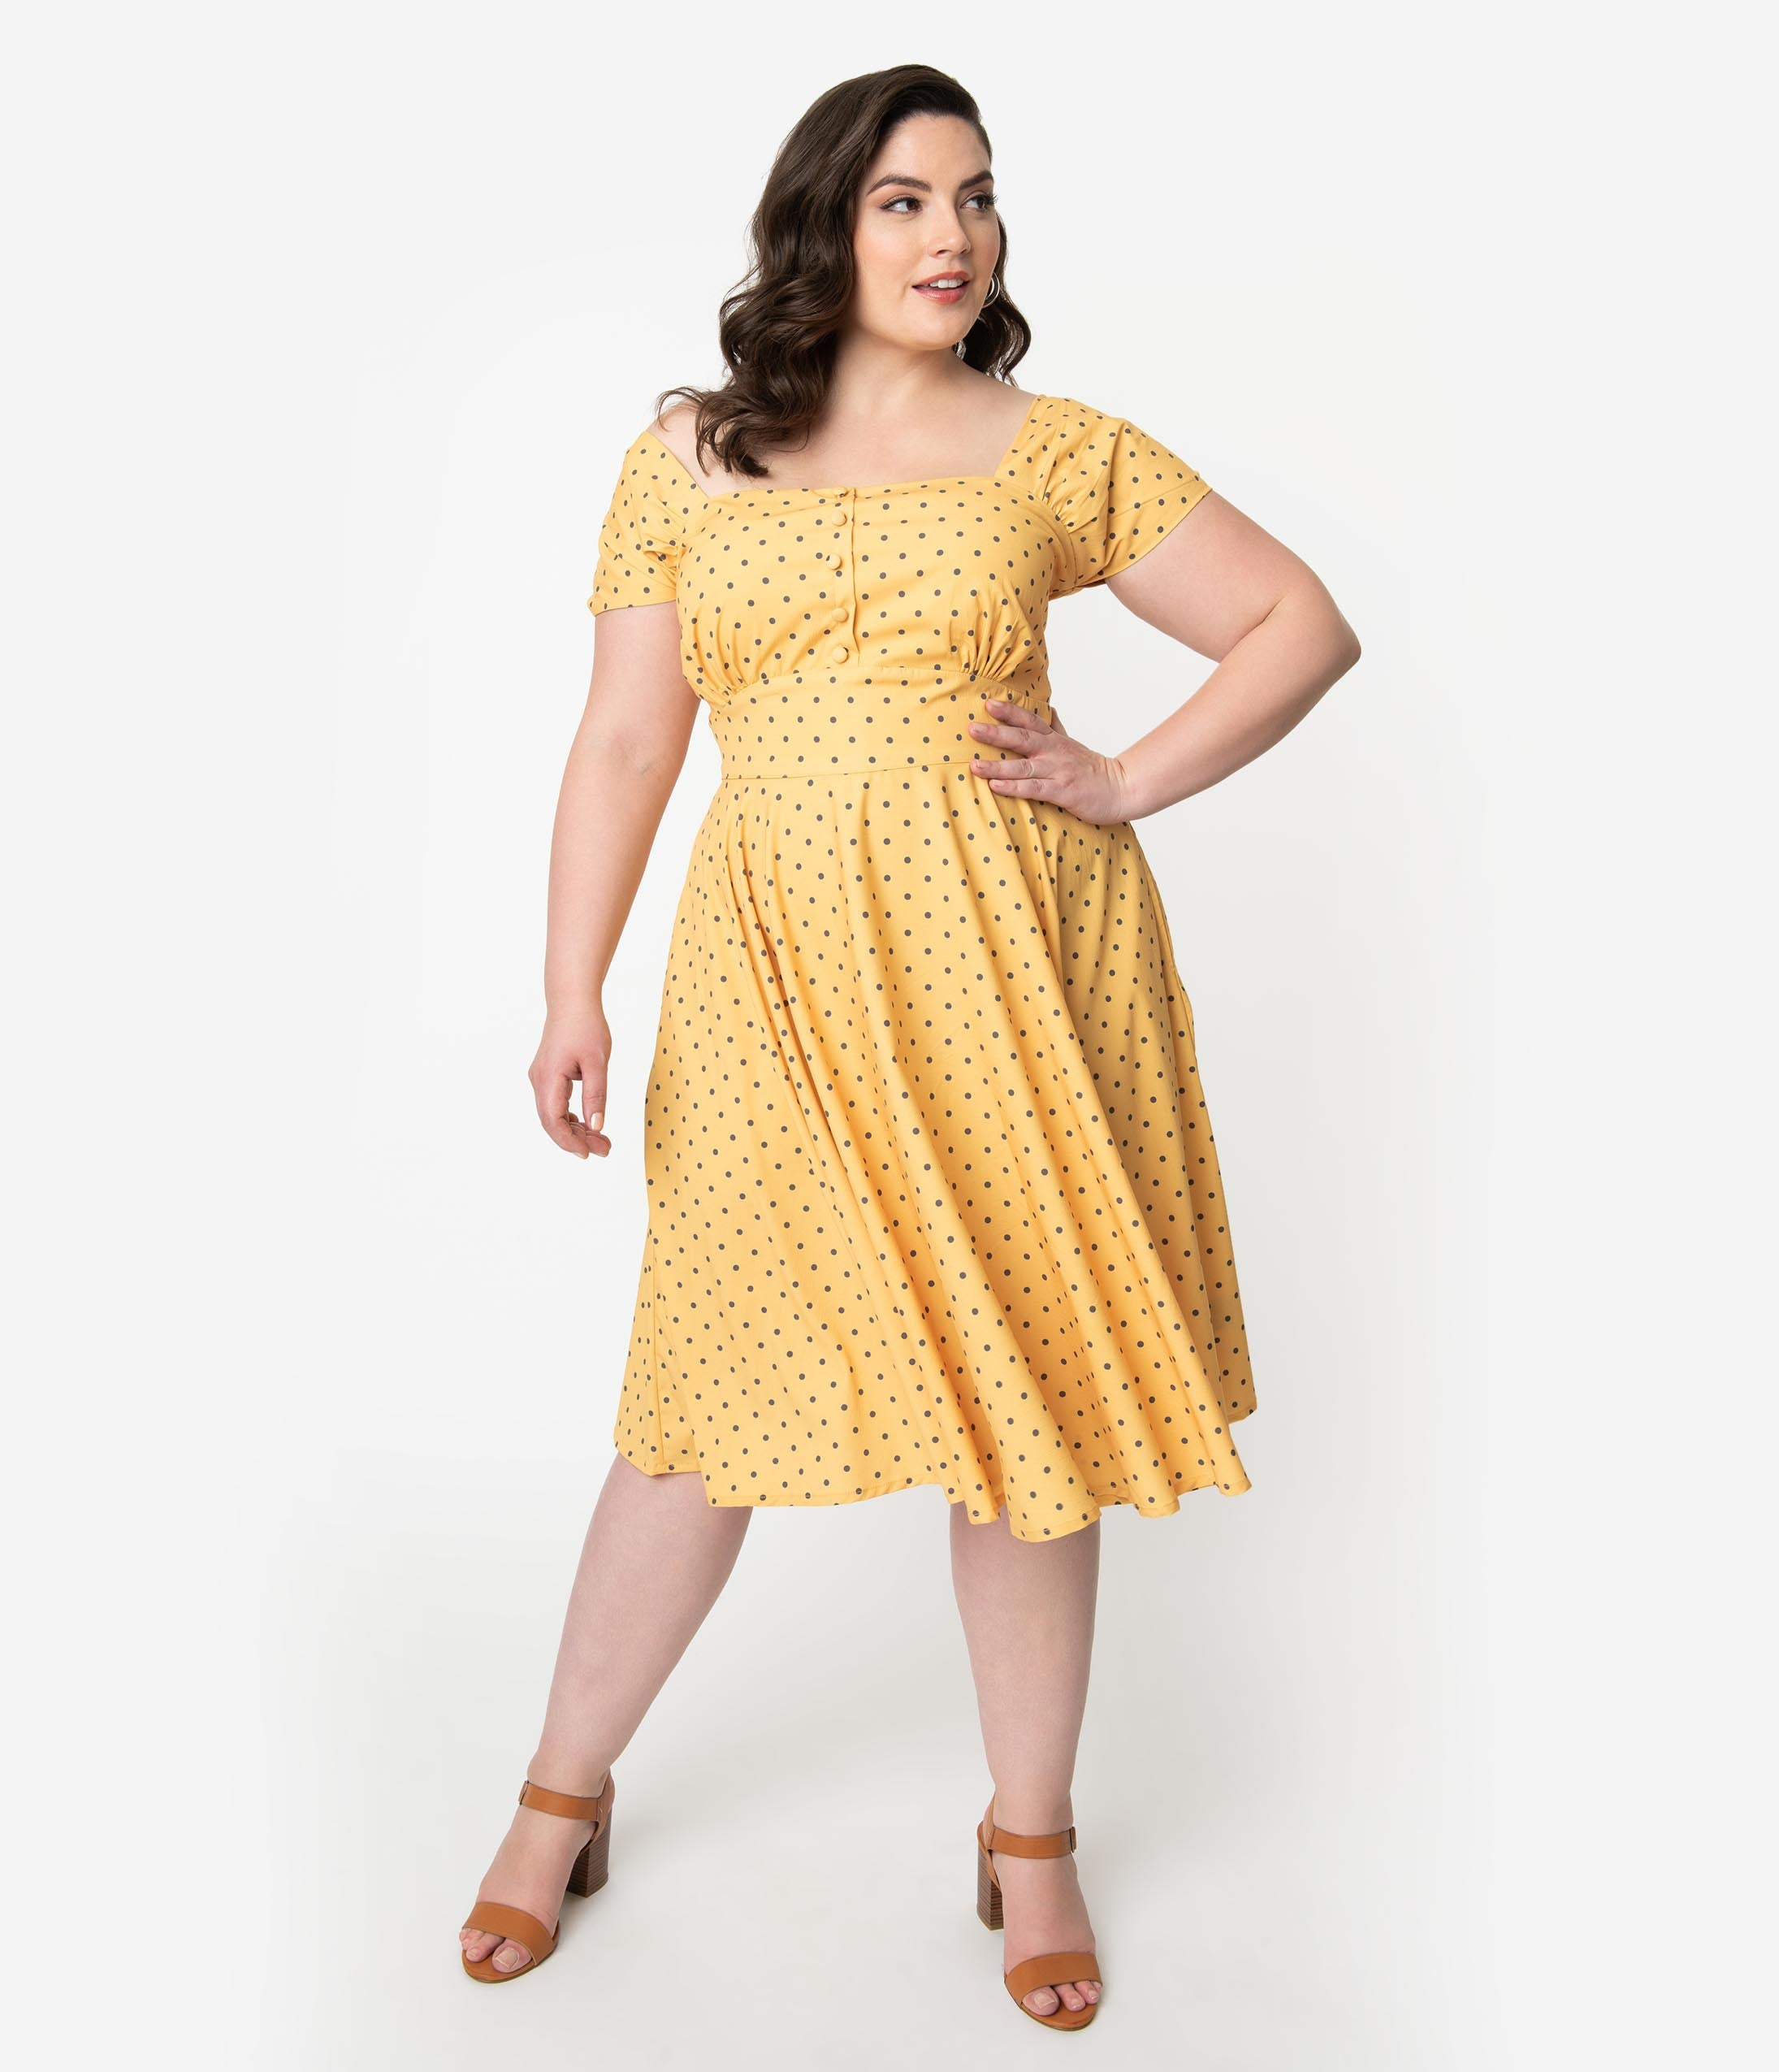 Swing Dance Clothing You Can Dance In Plus Size 1940S Style Yellow  Grey Polka Dot Cap Sleeve Zafira Swing Dress $72.00 AT vintagedancer.com